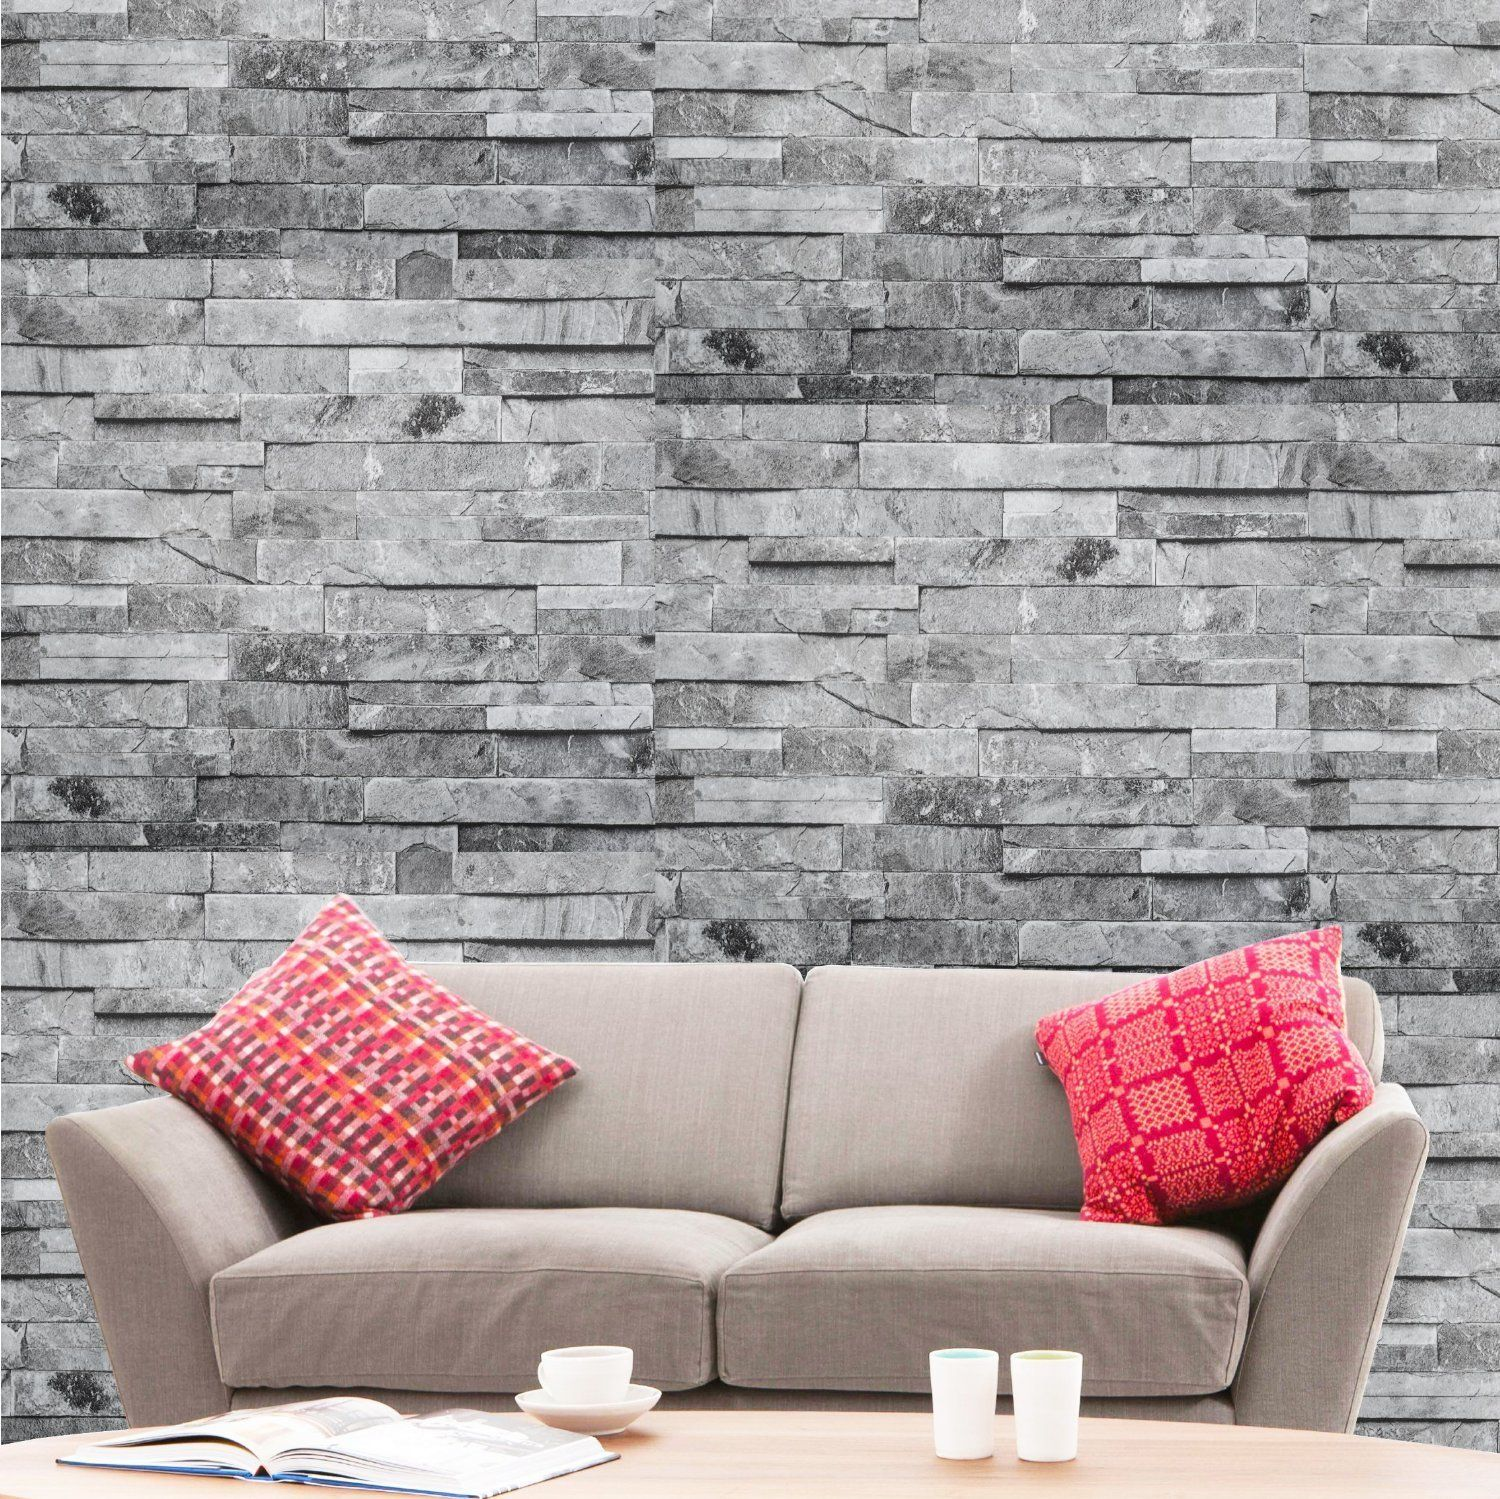 Hyfive® Brick Effect Wallpaper 3D Brick Stone Natural Grey